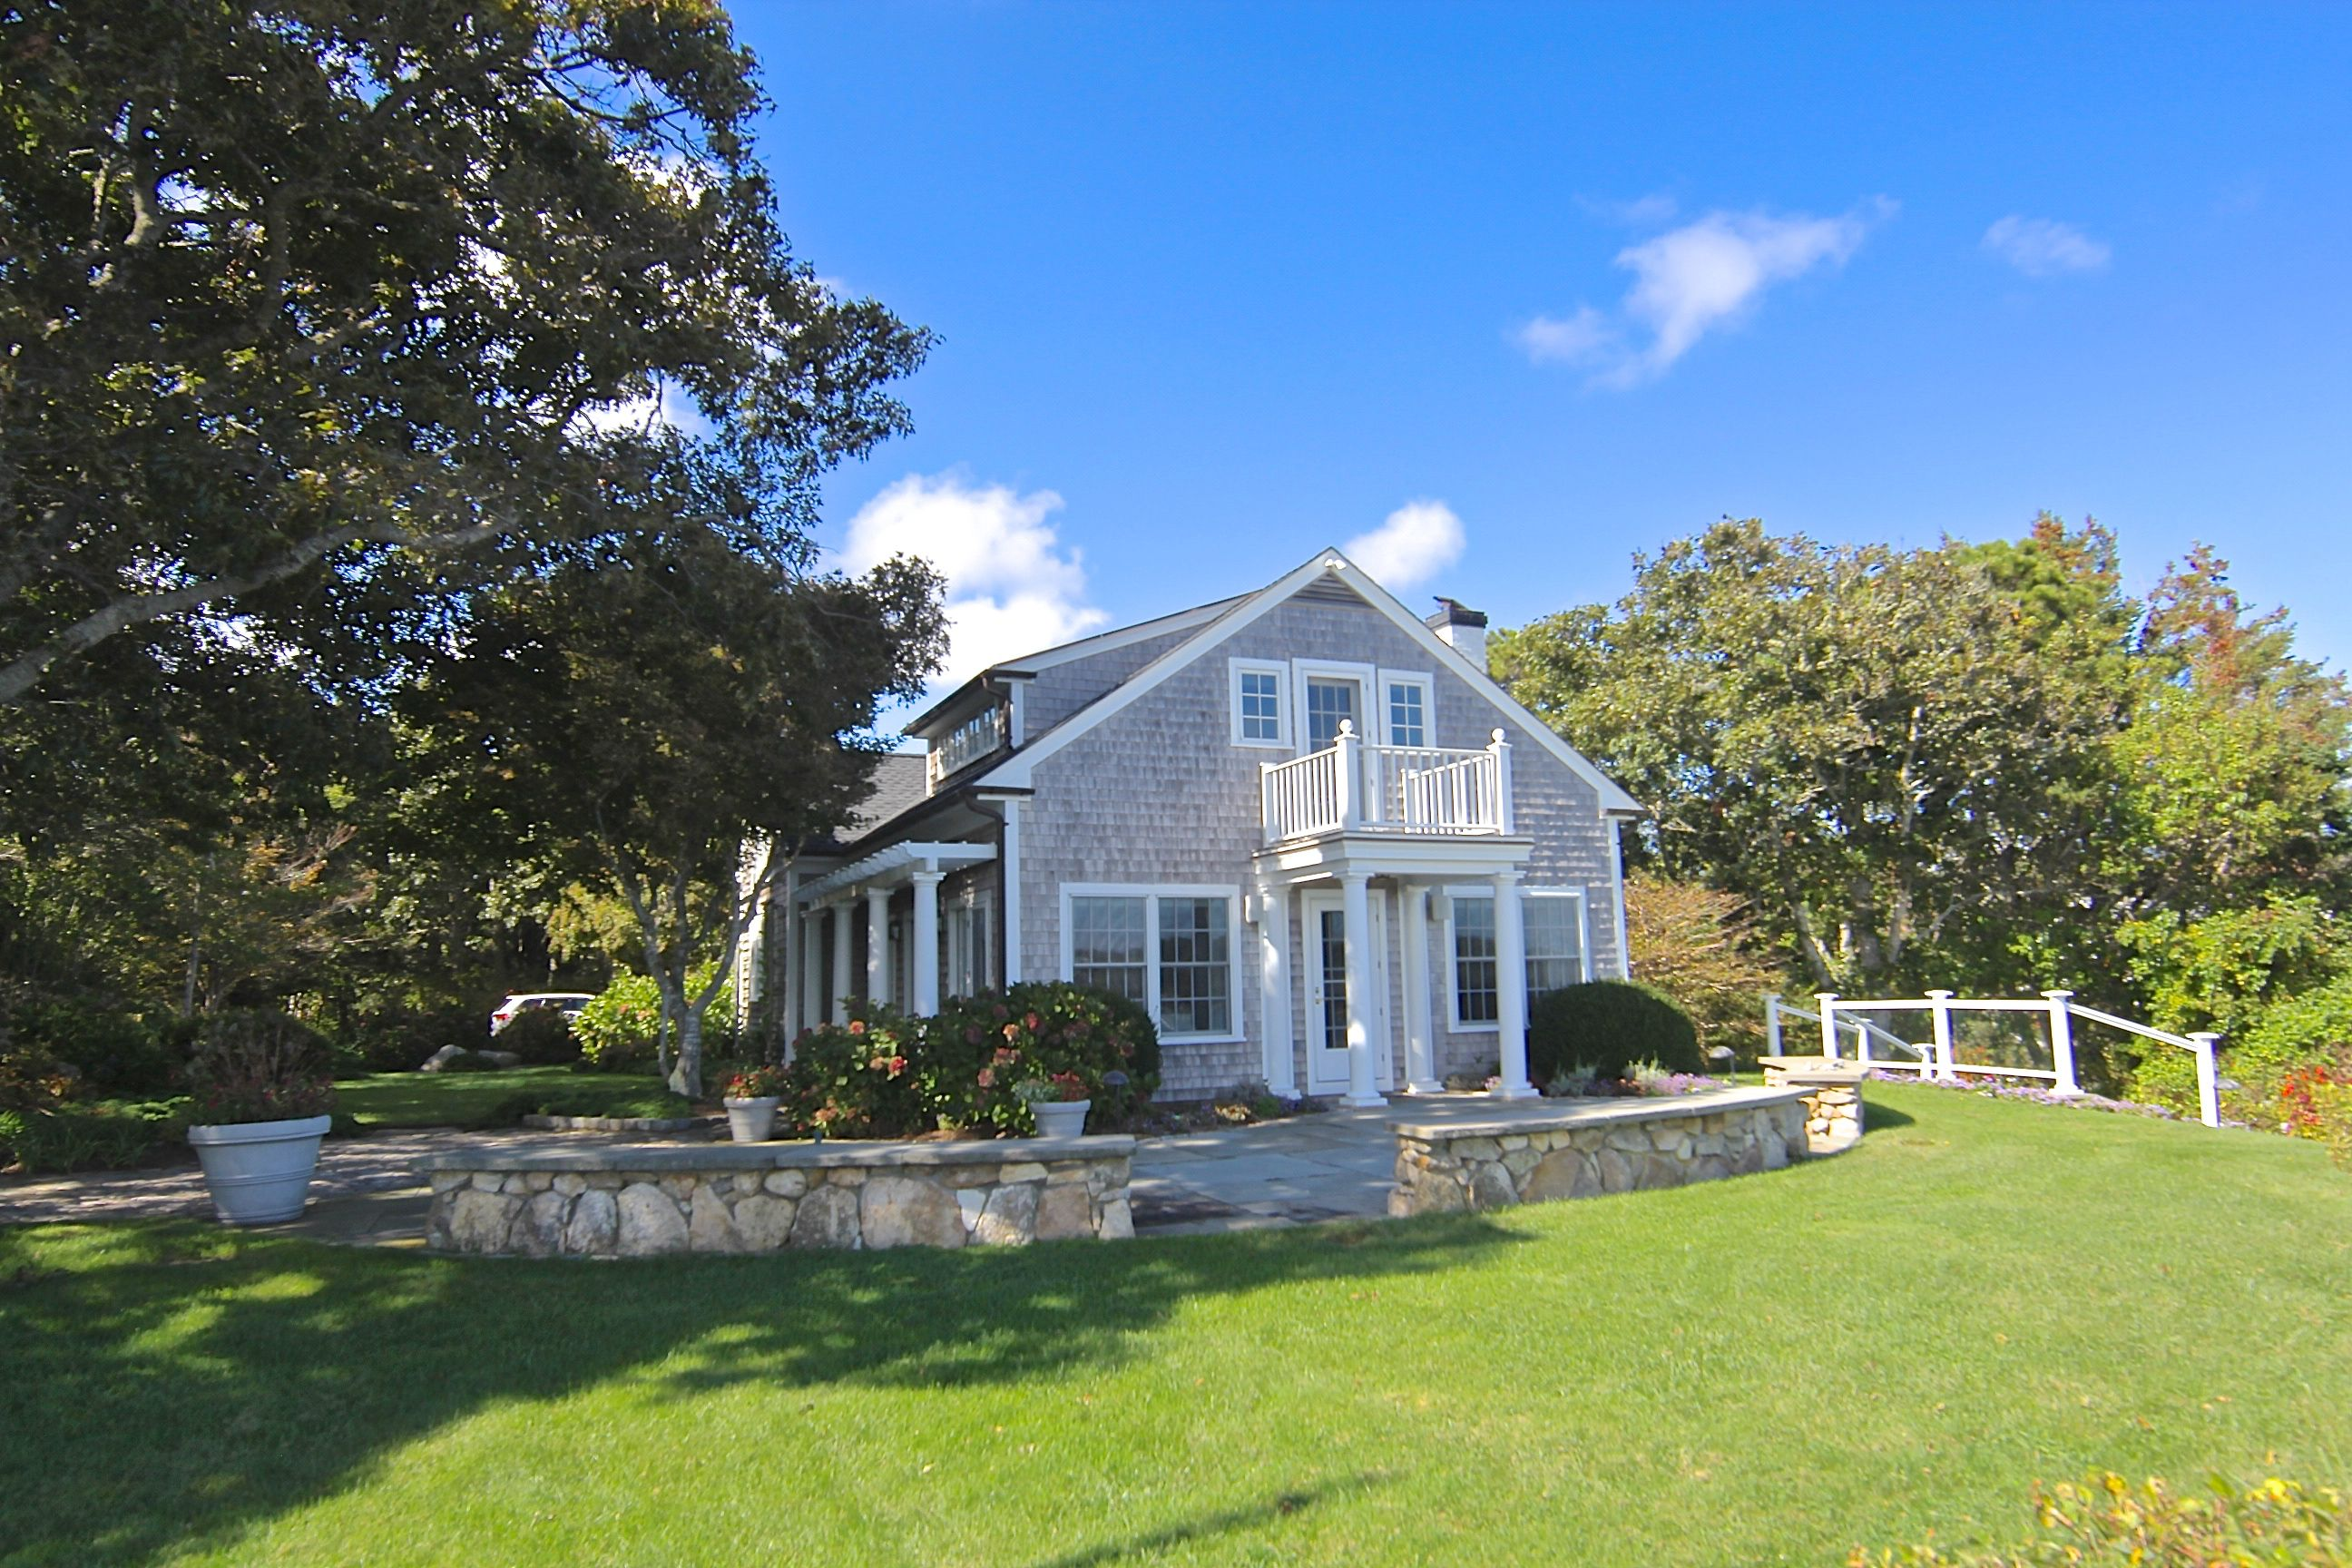 Additional photo for property listing at 32 Ocean View Avenue 32 Ocean View Avenue Edgartown, Μασαχουσετη,02539 Ηνωμενεσ Πολιτειεσ